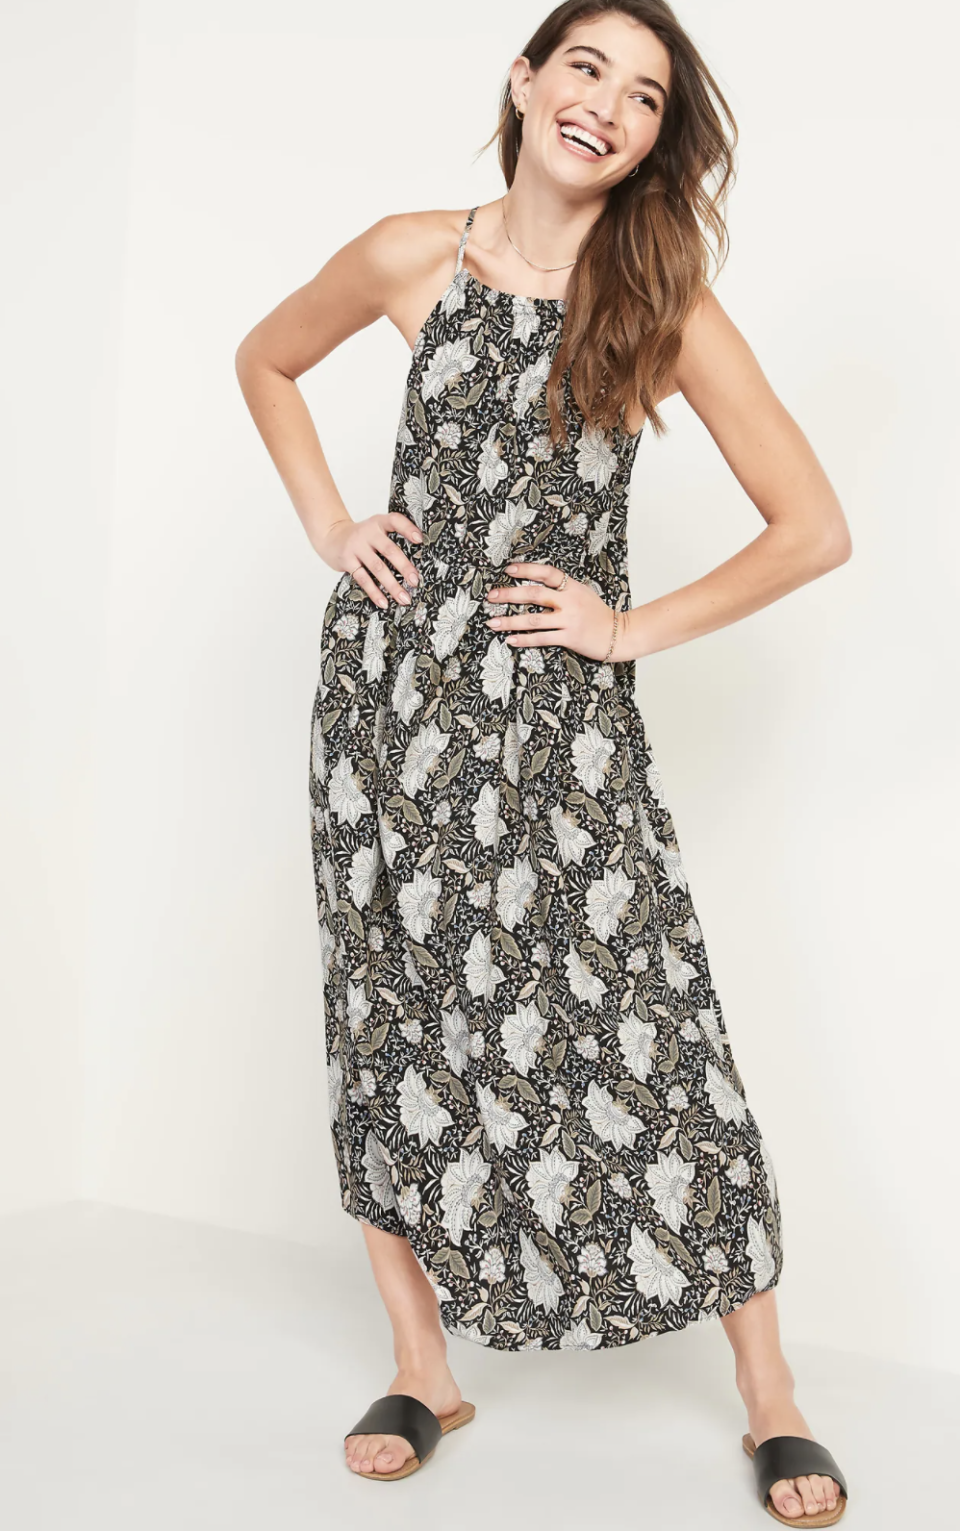 Sleeveless High-Neck Maxi Swing Dress for Women - Old Navy.